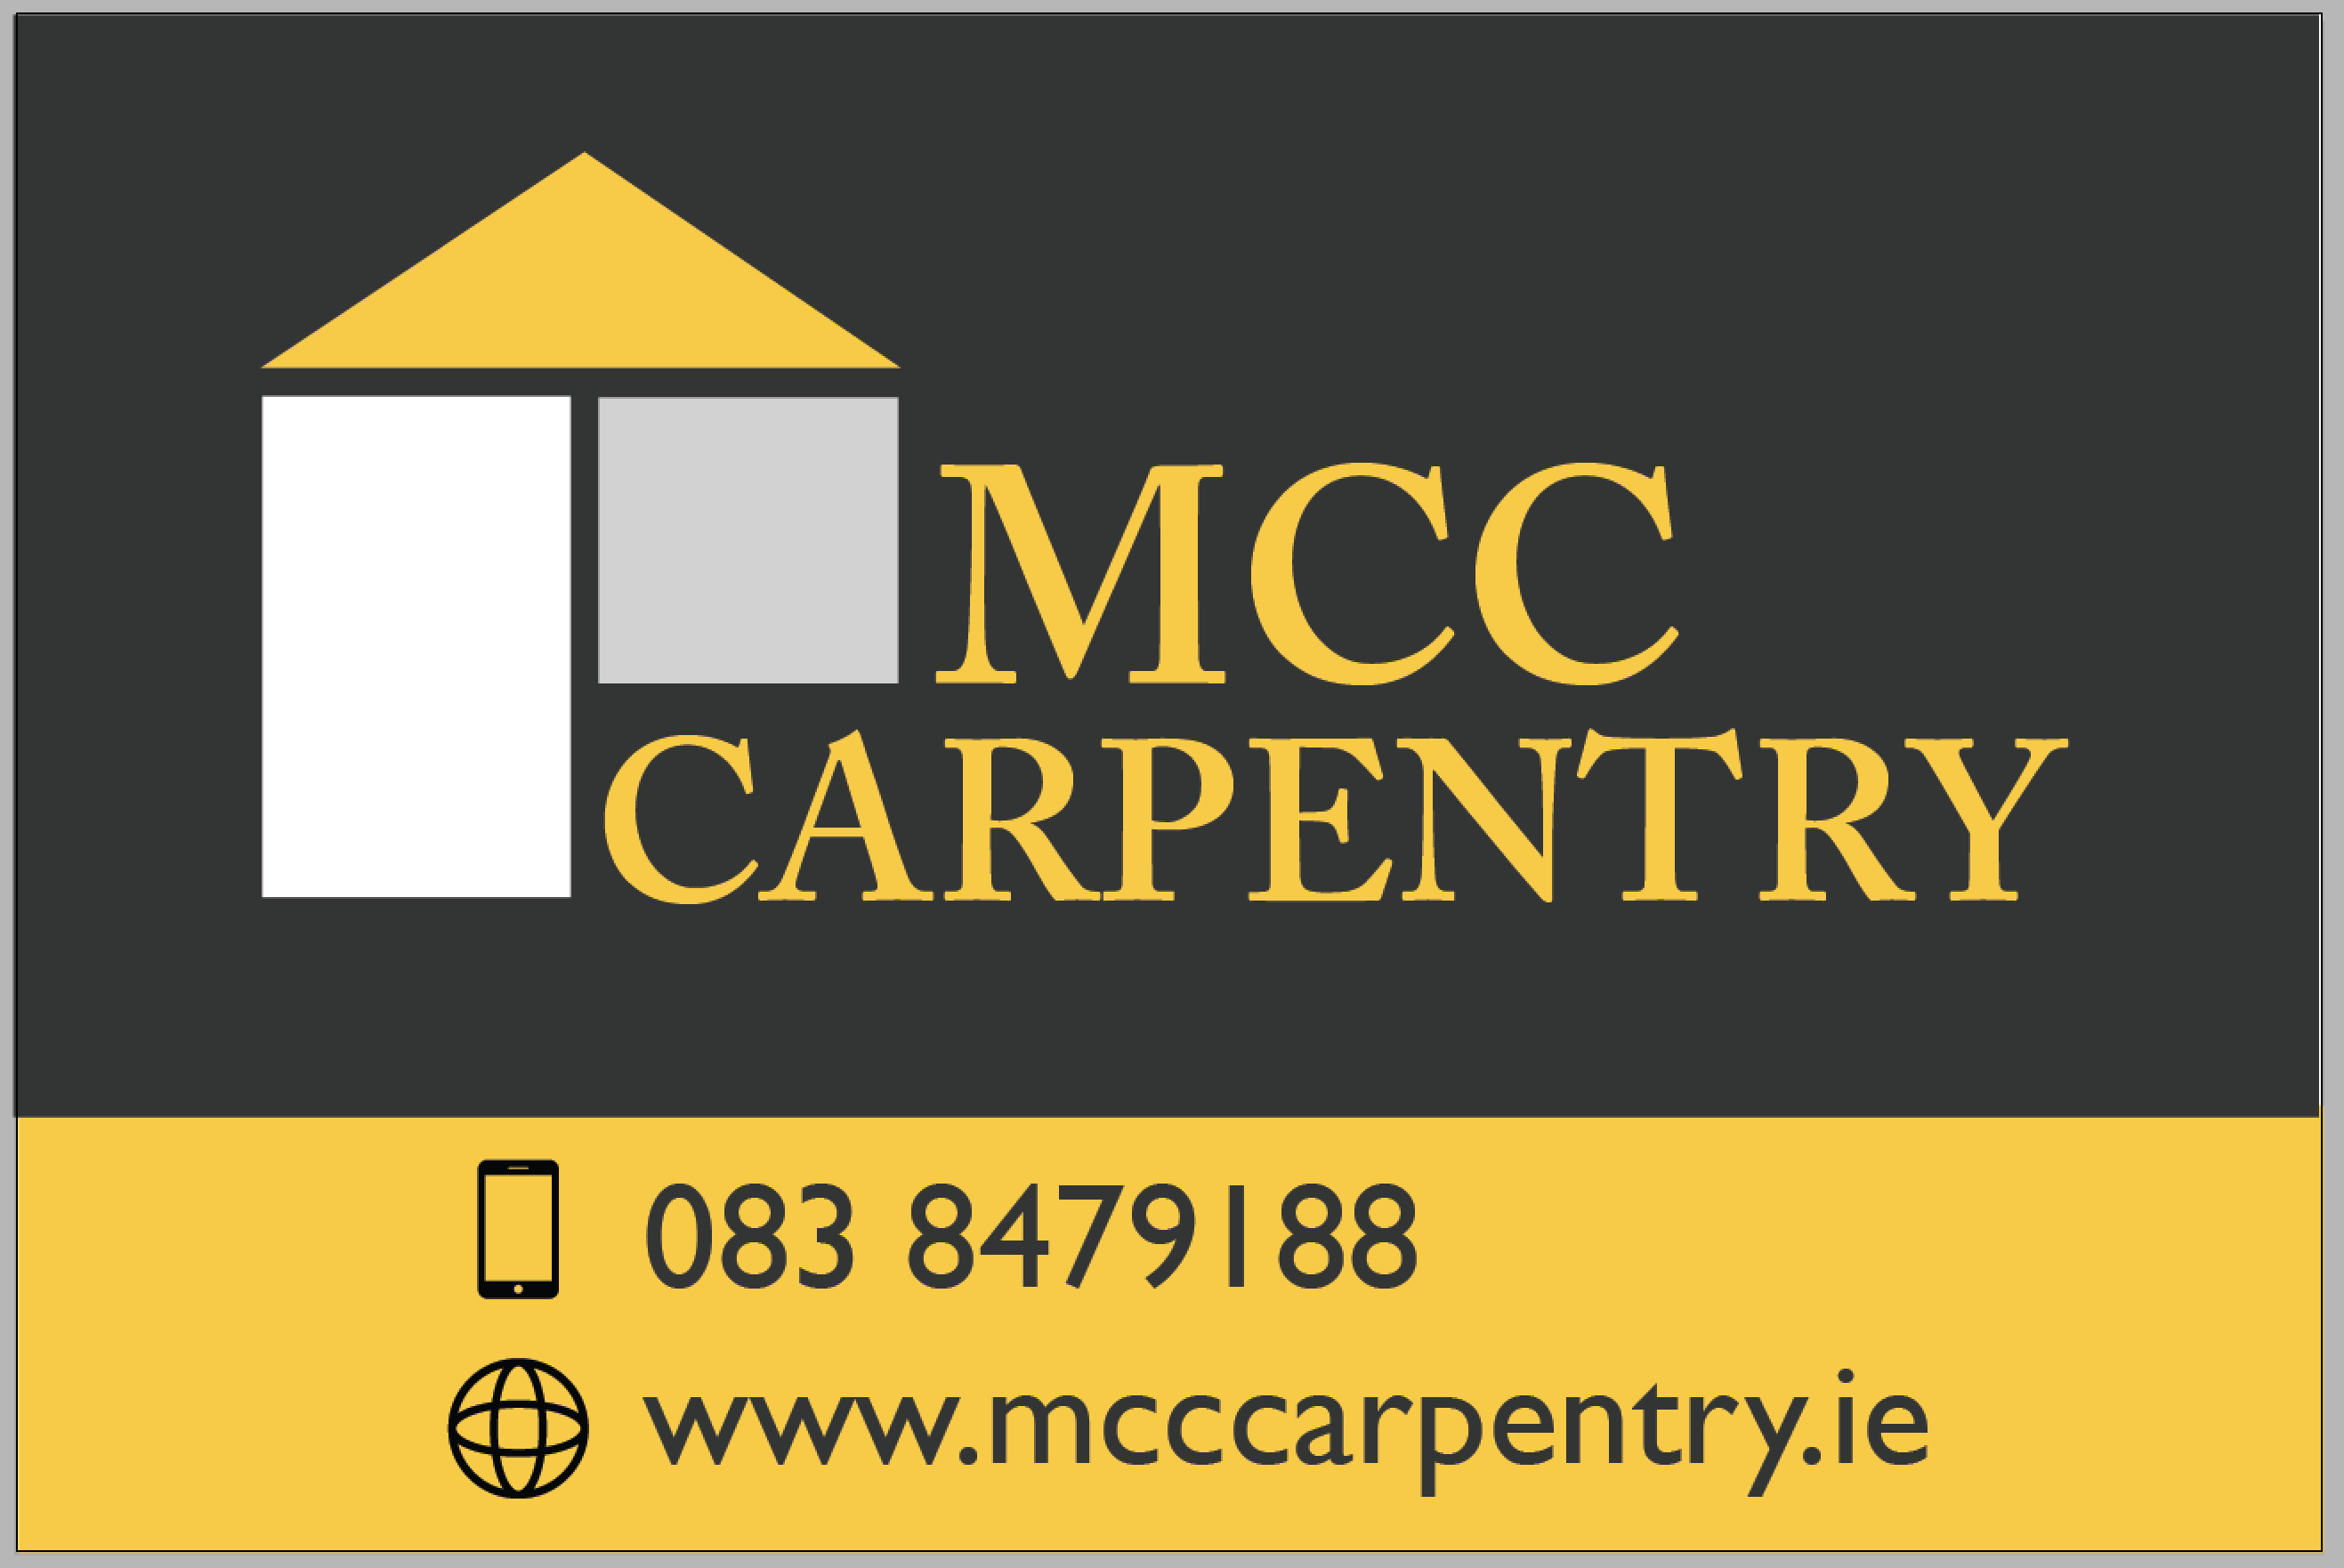 MCC Carpentry